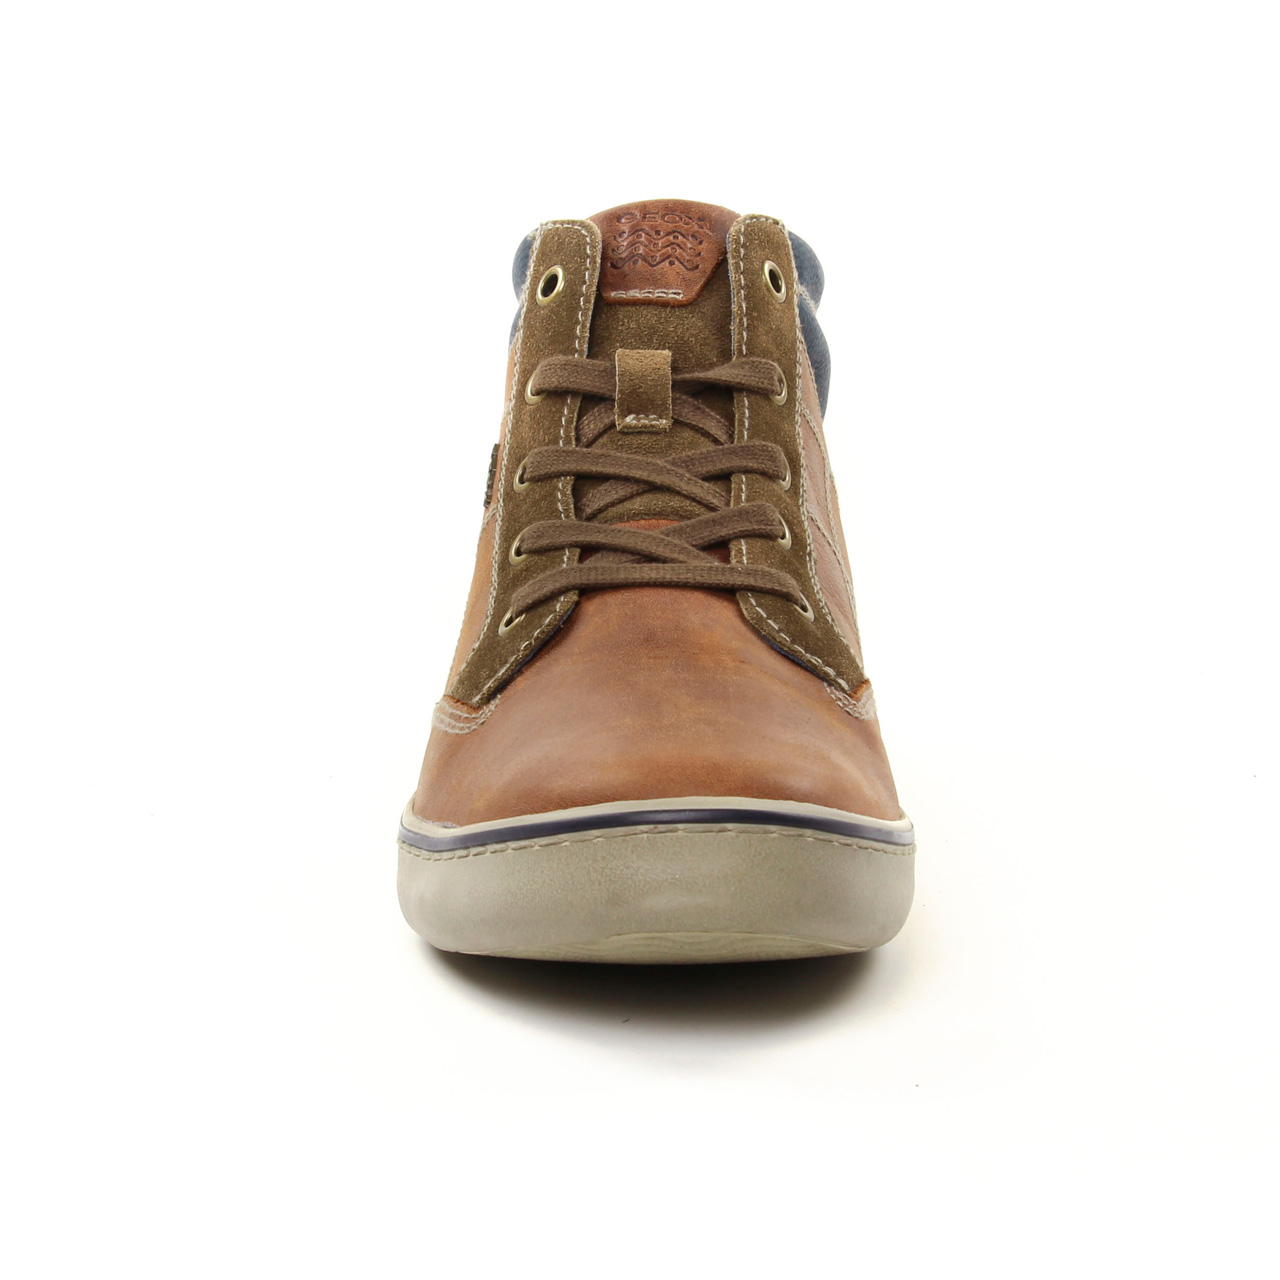 Marron U74r3c Hiver Automne CottoChaussure Brown Geox Montantes LUpMVqSzG